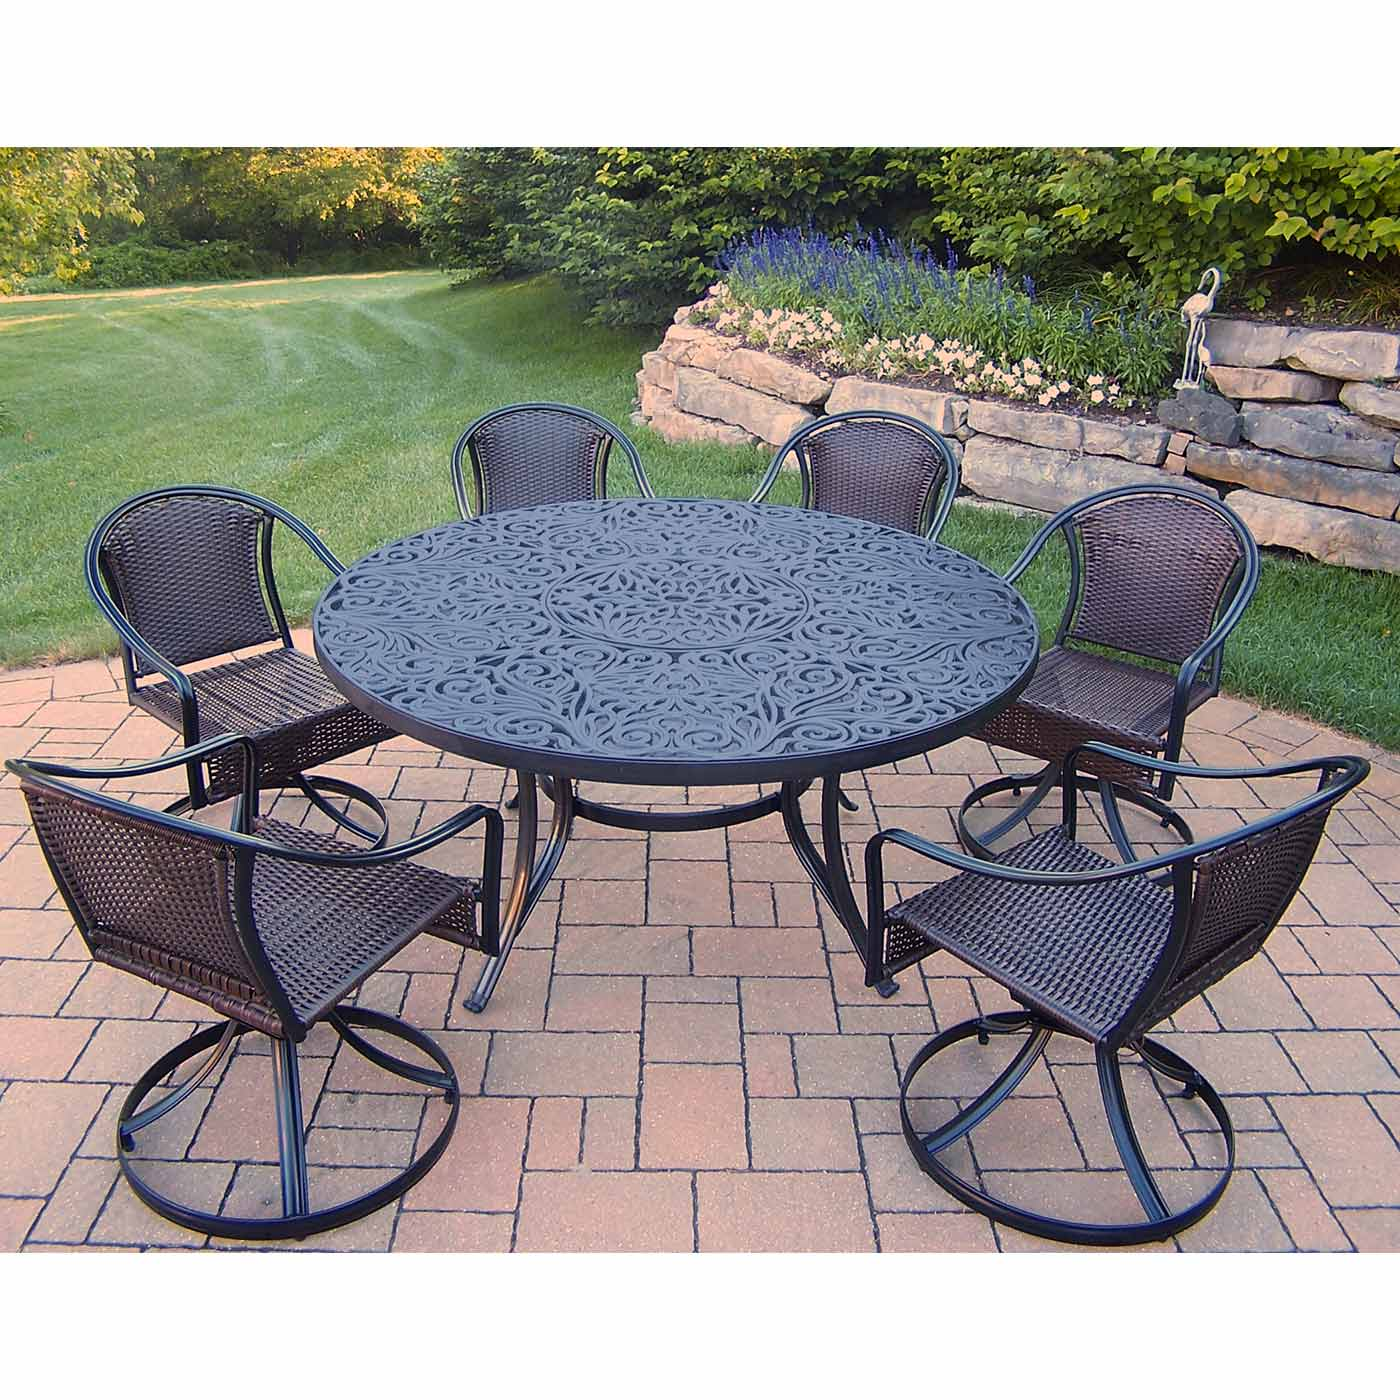 "Round Table And Chairs For 6: Oakland Living Tuscany 7-Piece Patio Set With 60"" Round"